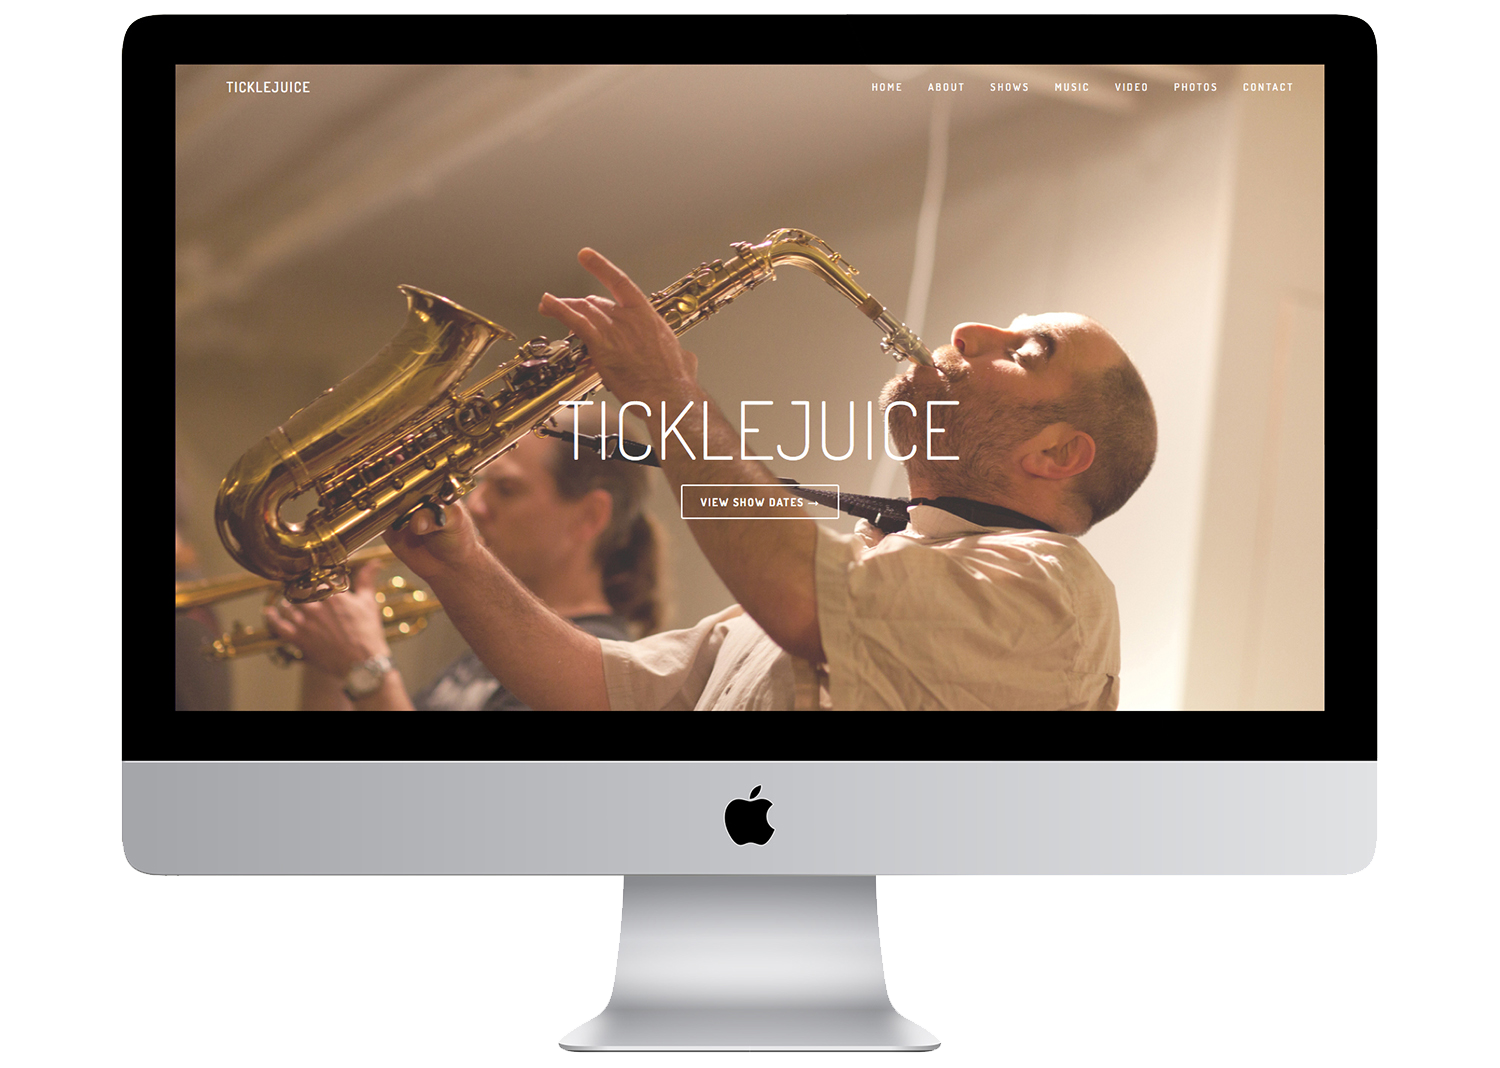 TickleJuice led by James Merenda, Website by Geena Matuson